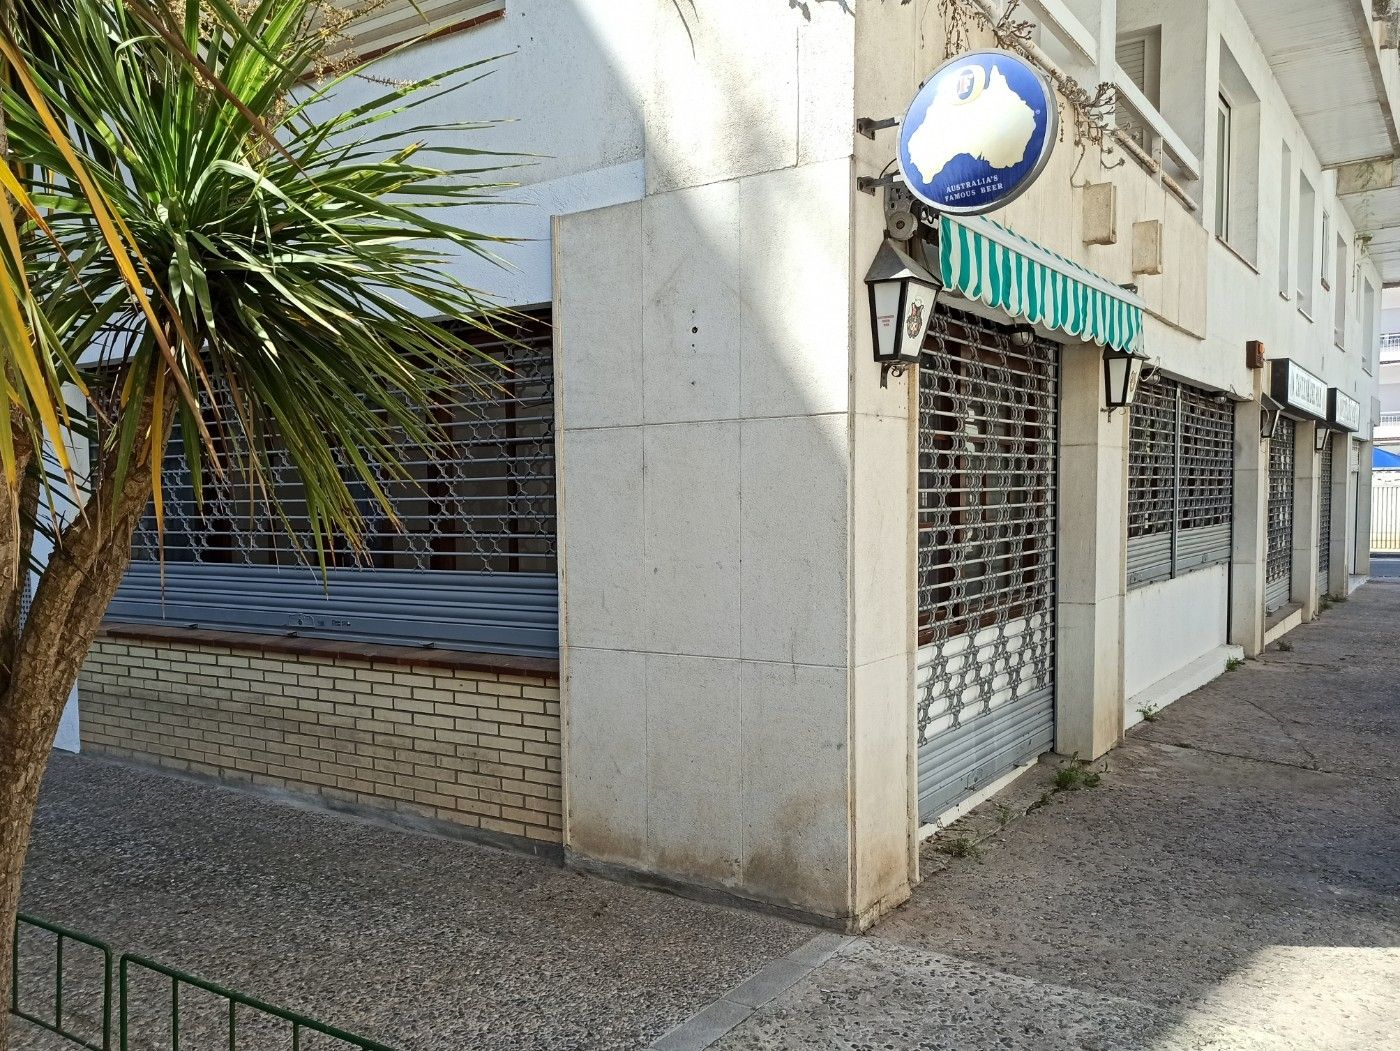 Local Comercial en Carrer pintor fortuny, 2